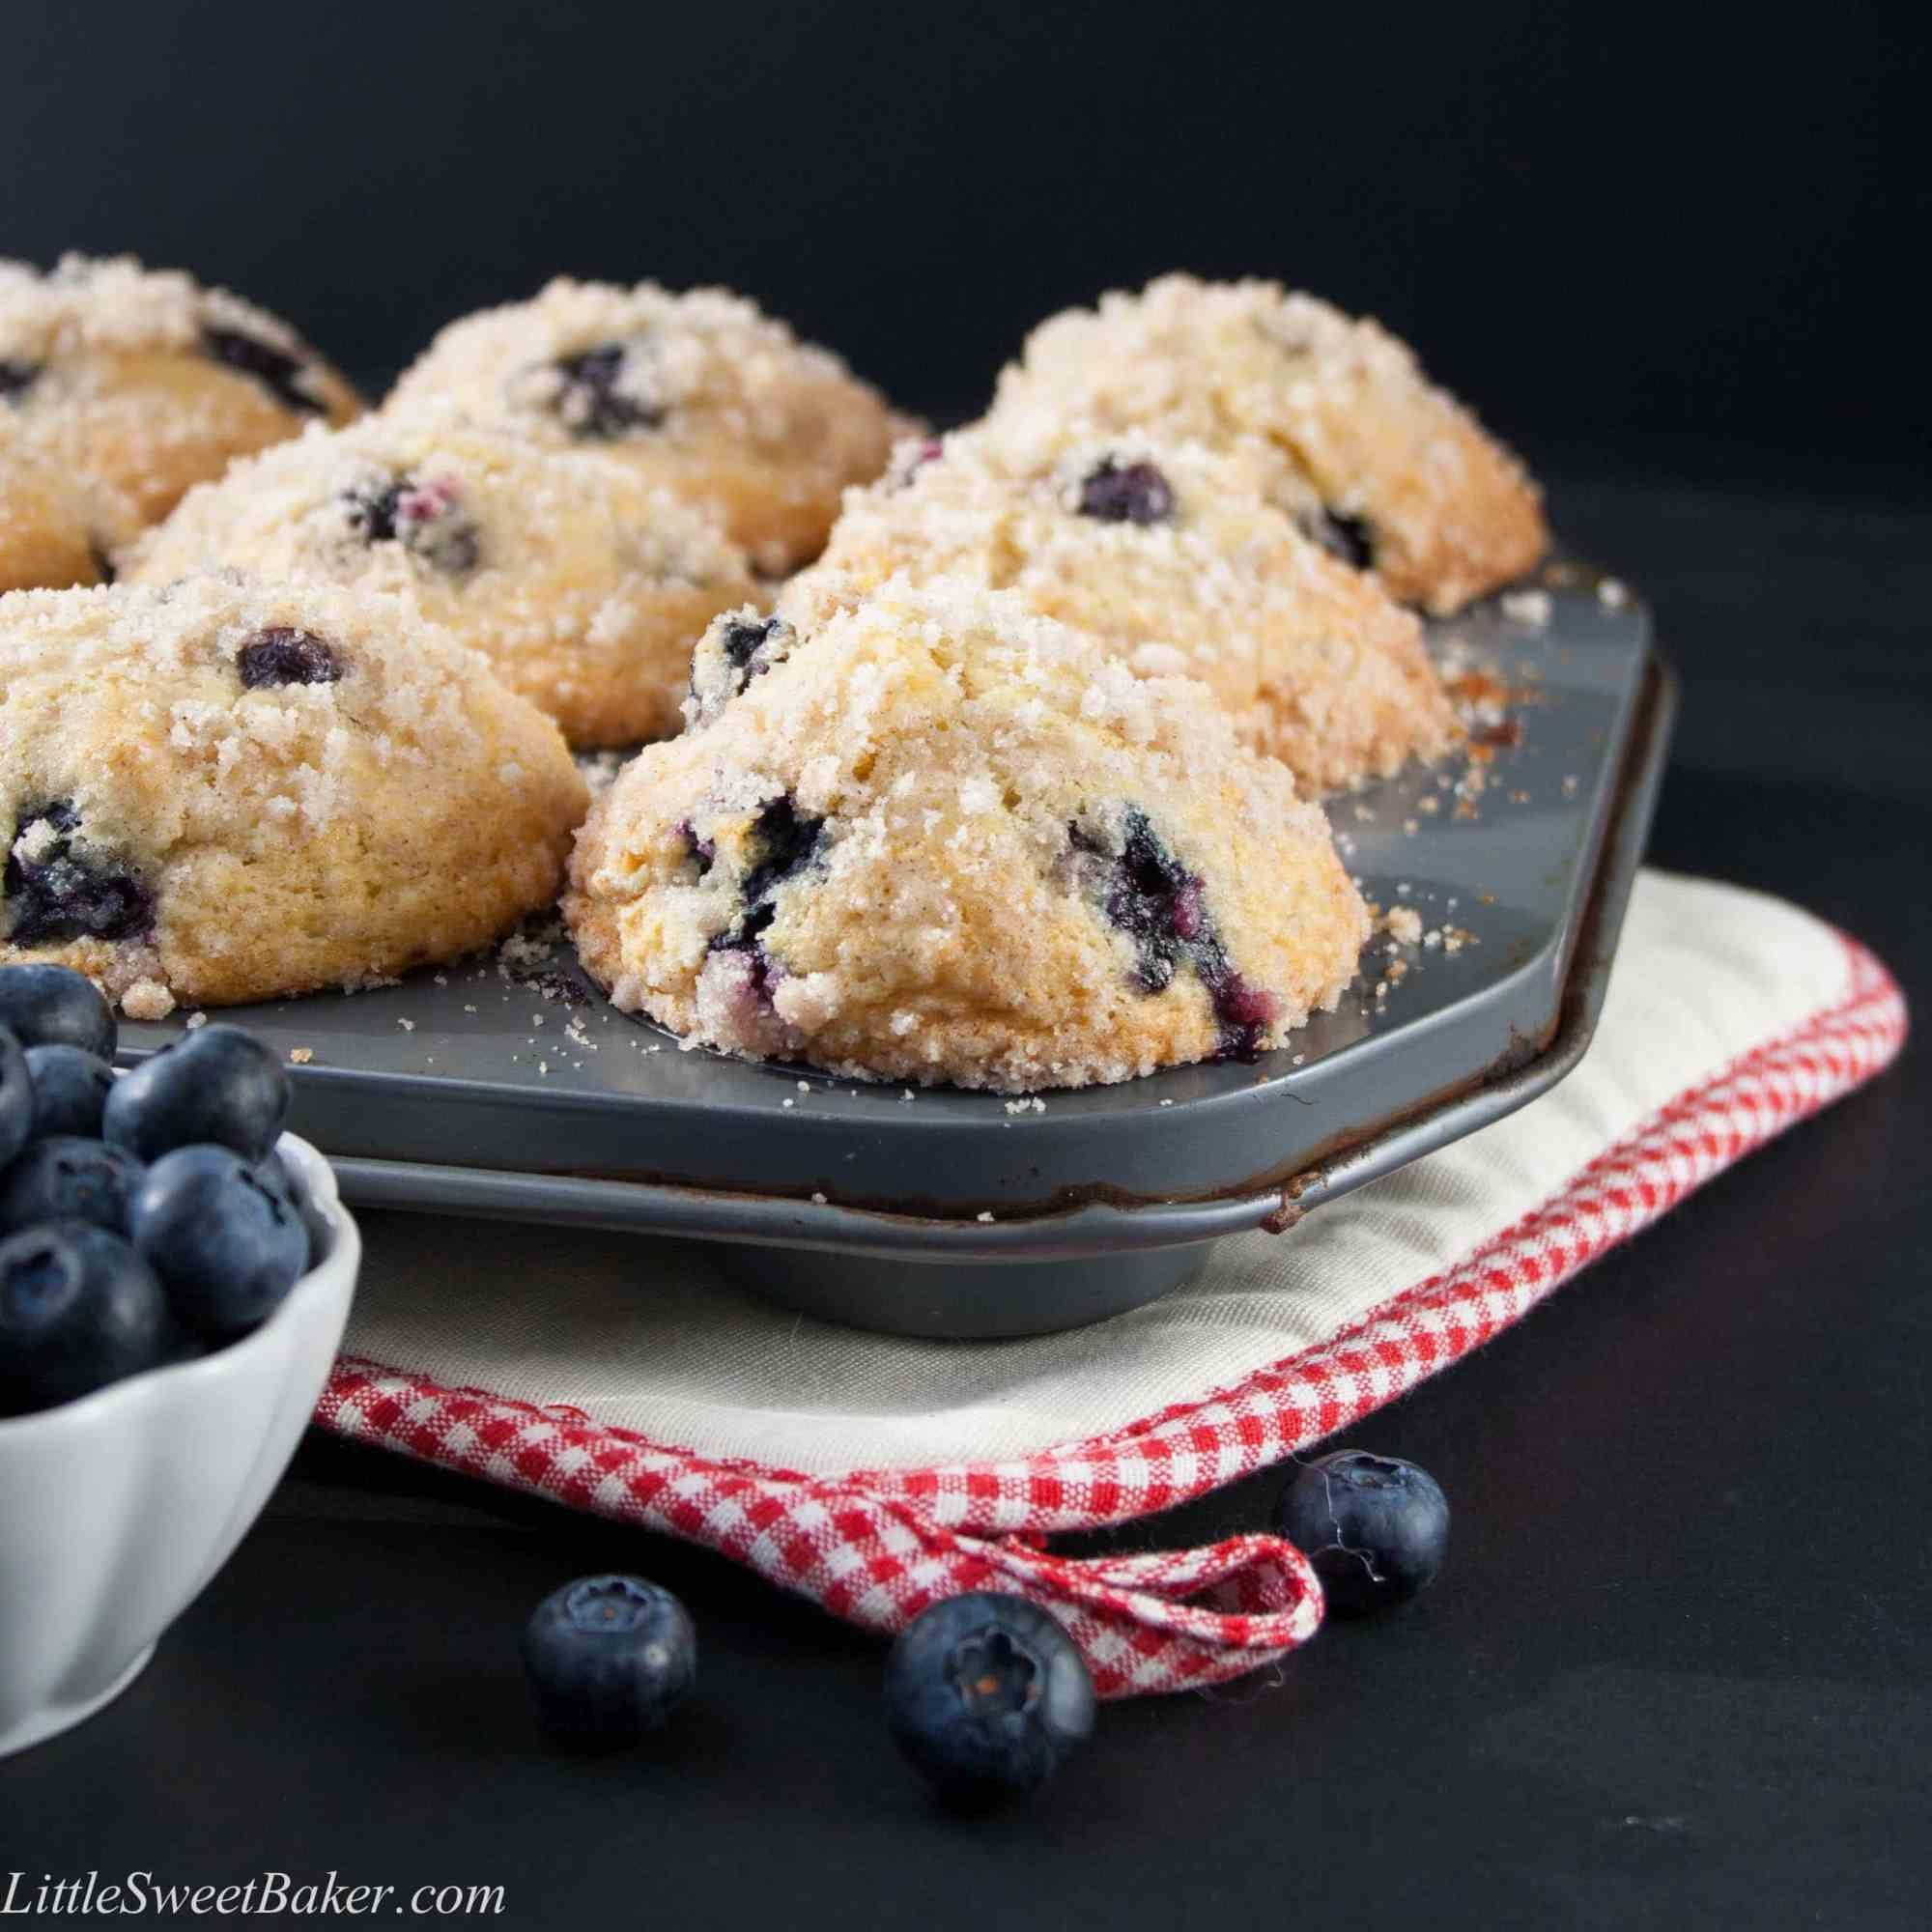 Best Blueberry Streusel Muffins Bakery Style Recipe Blueberry Streusel Muffins Gourmet Bakery Bakery Style Blueberry Muffins